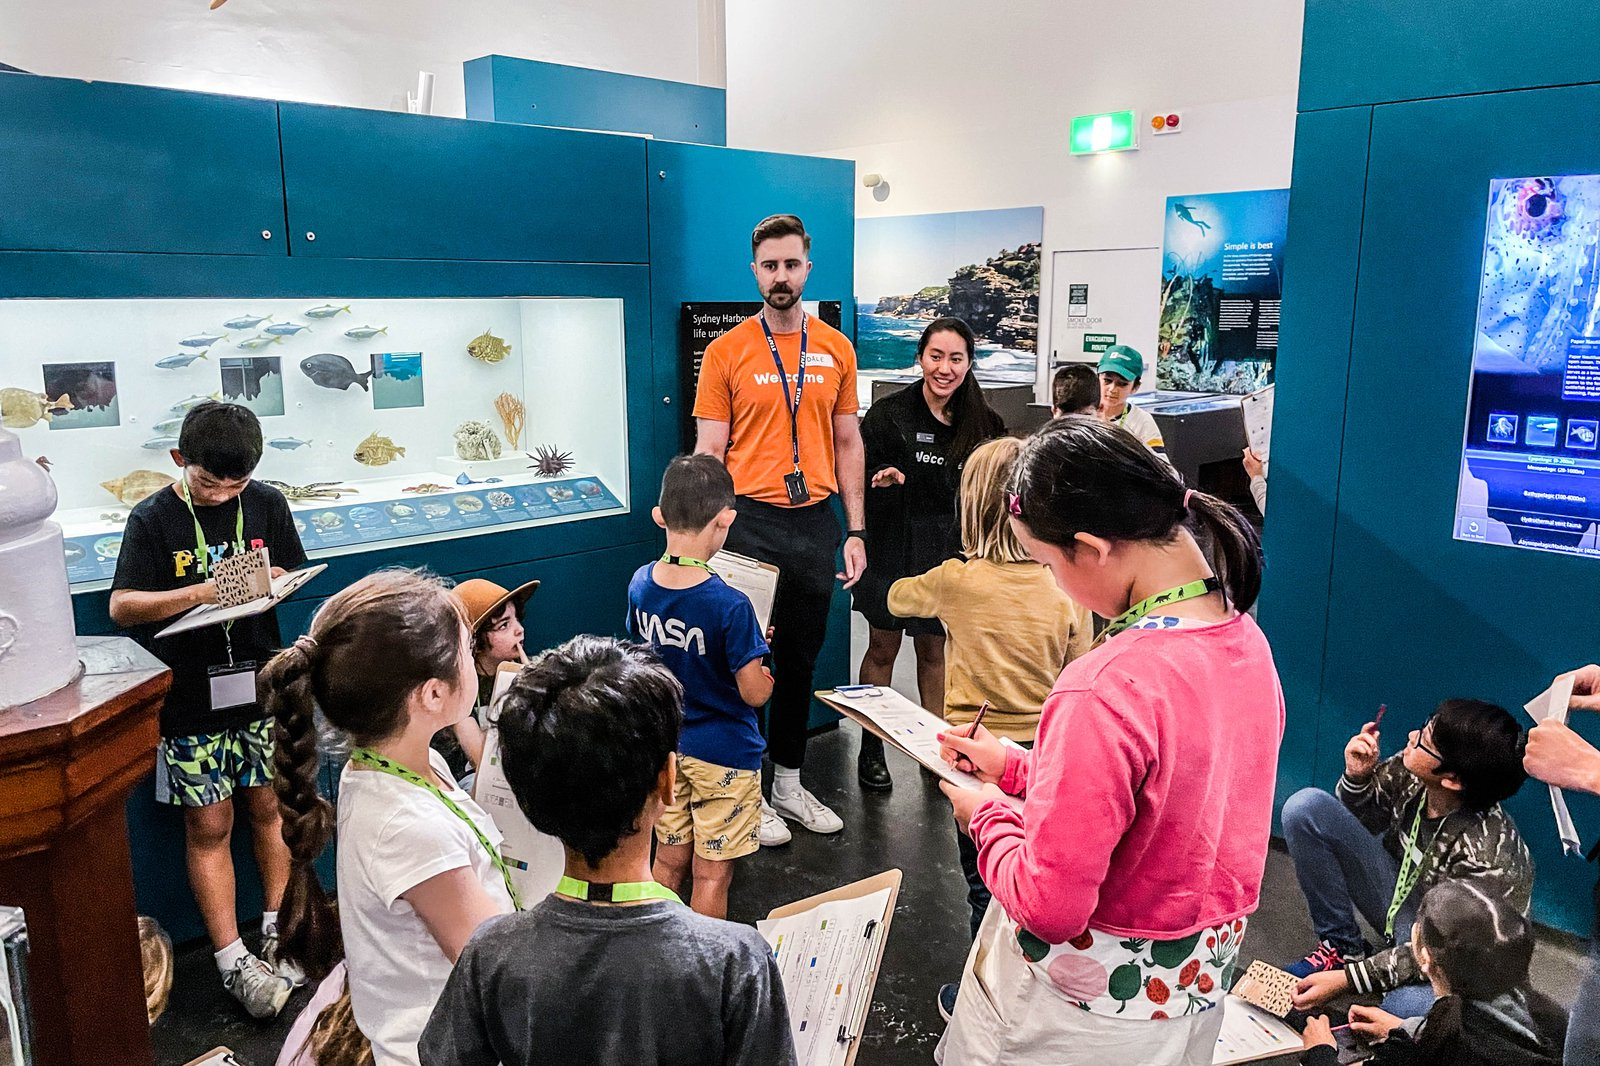 Children exploring exhibitions for Scientist for a Day, Malacologist